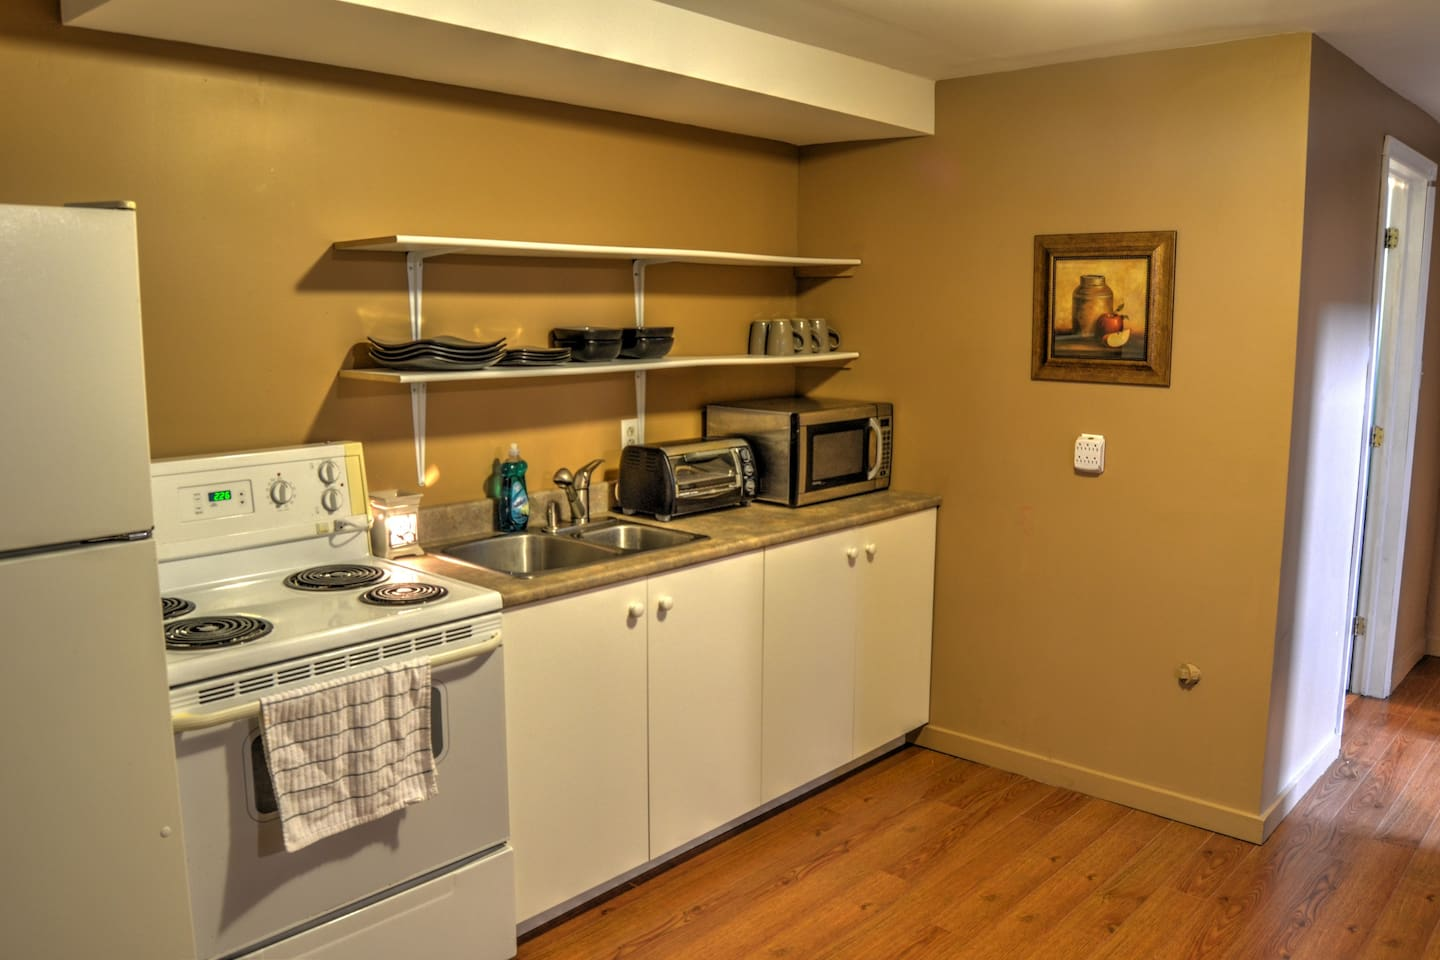 Welcome to your cute and cozy kitchen with everything you need!